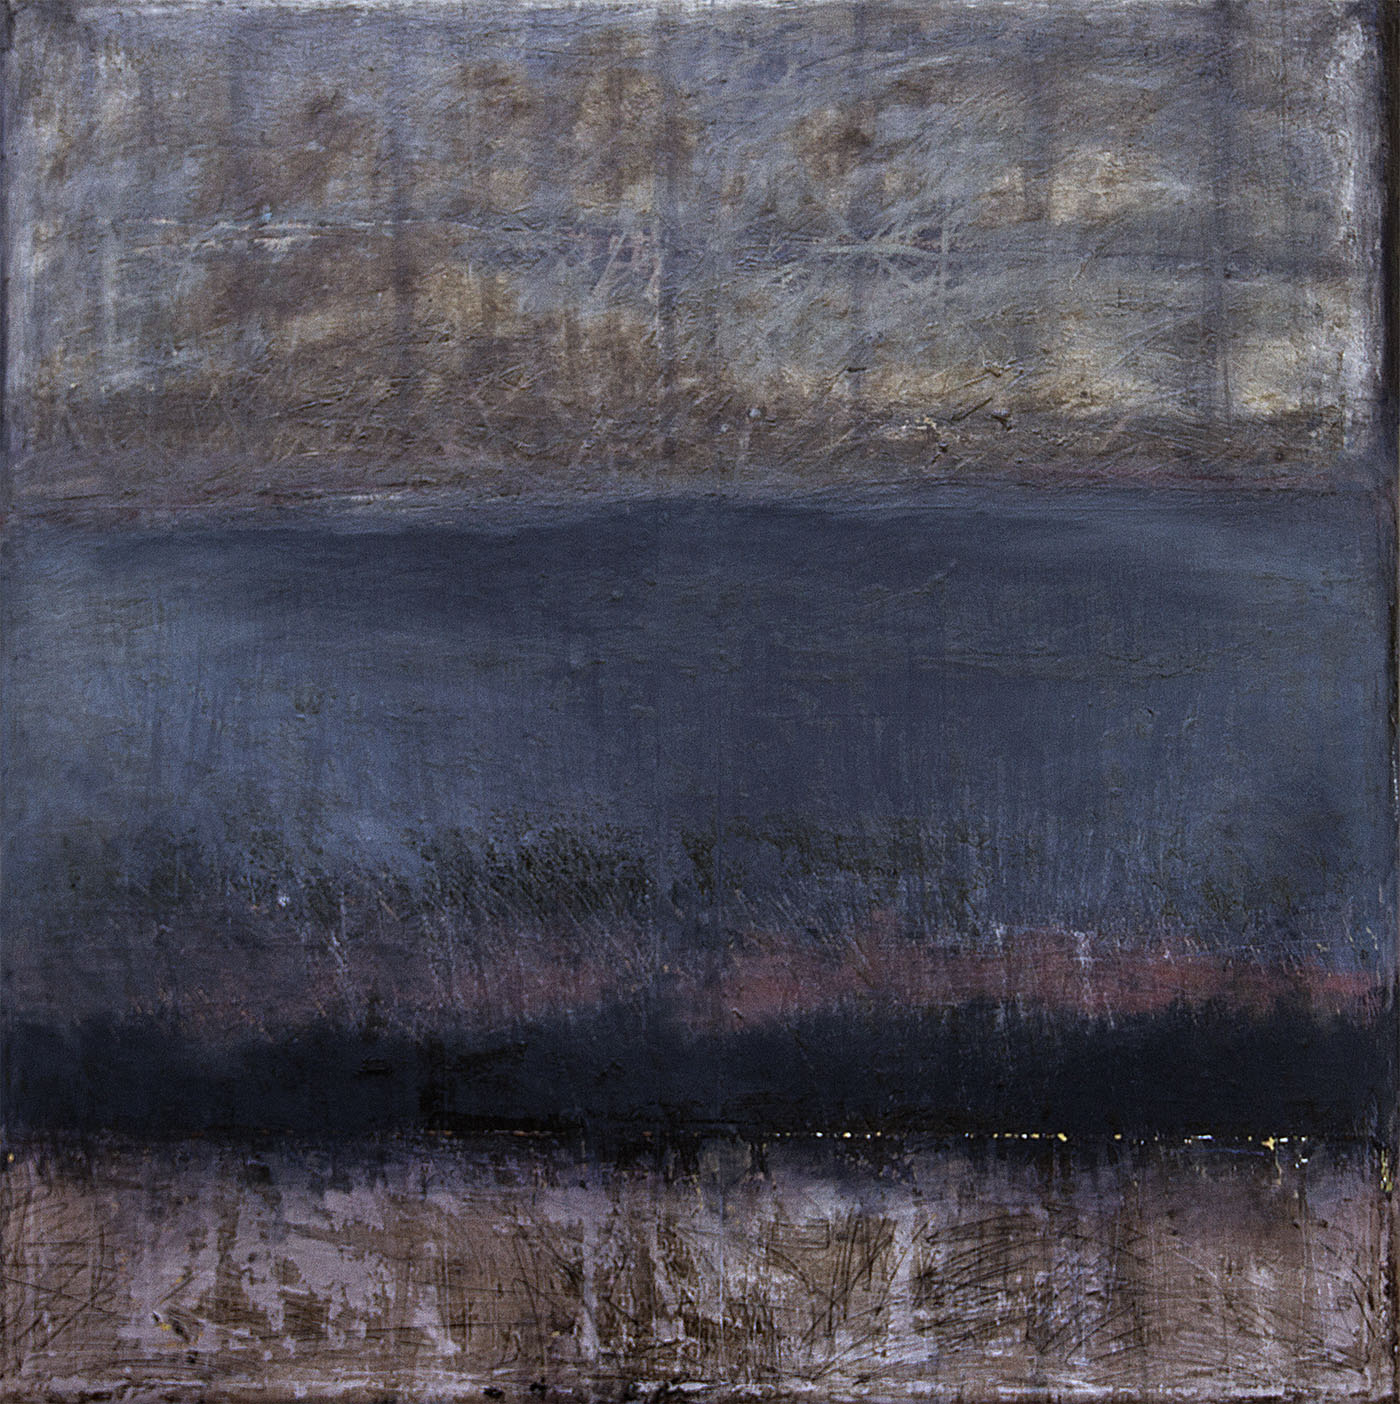 Wayne Stephens, Untitled 2, 2013, Oil and mixed media on canvas, 60 x 60 inches